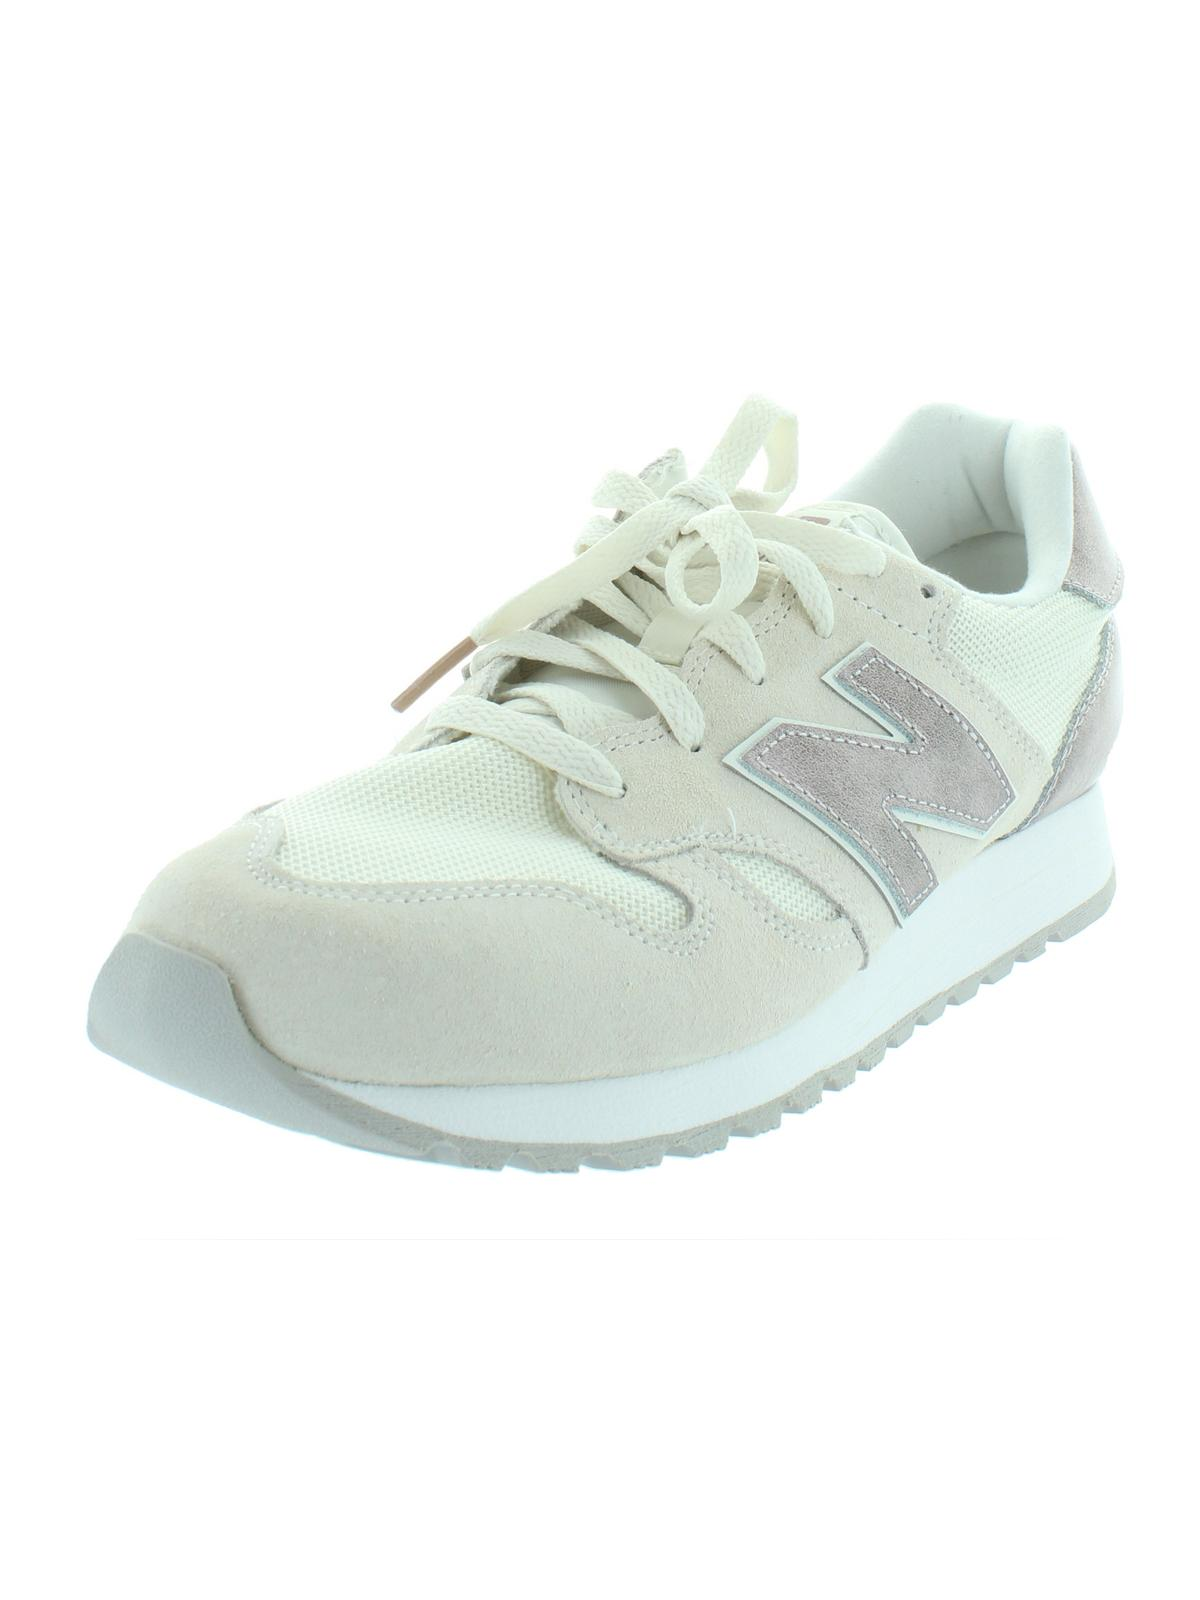 New Balance Womens Classics 520 Walking Low Top Athletic Shoes